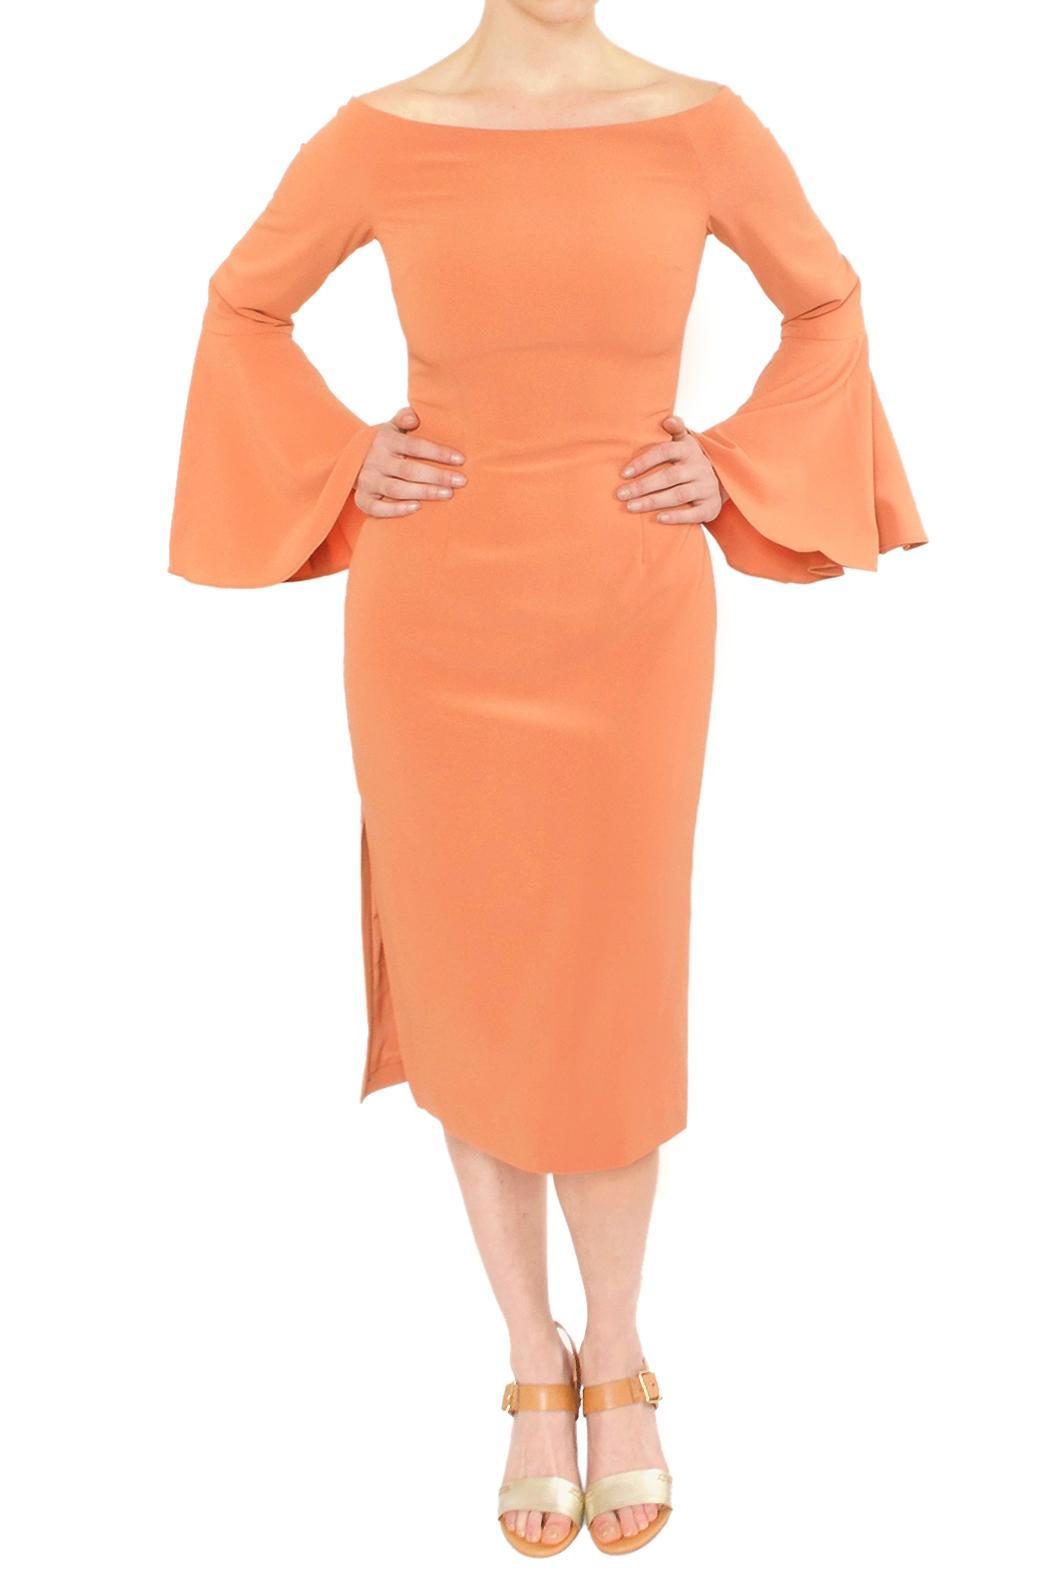 Keepsake Coral Flare Dress - Main Image